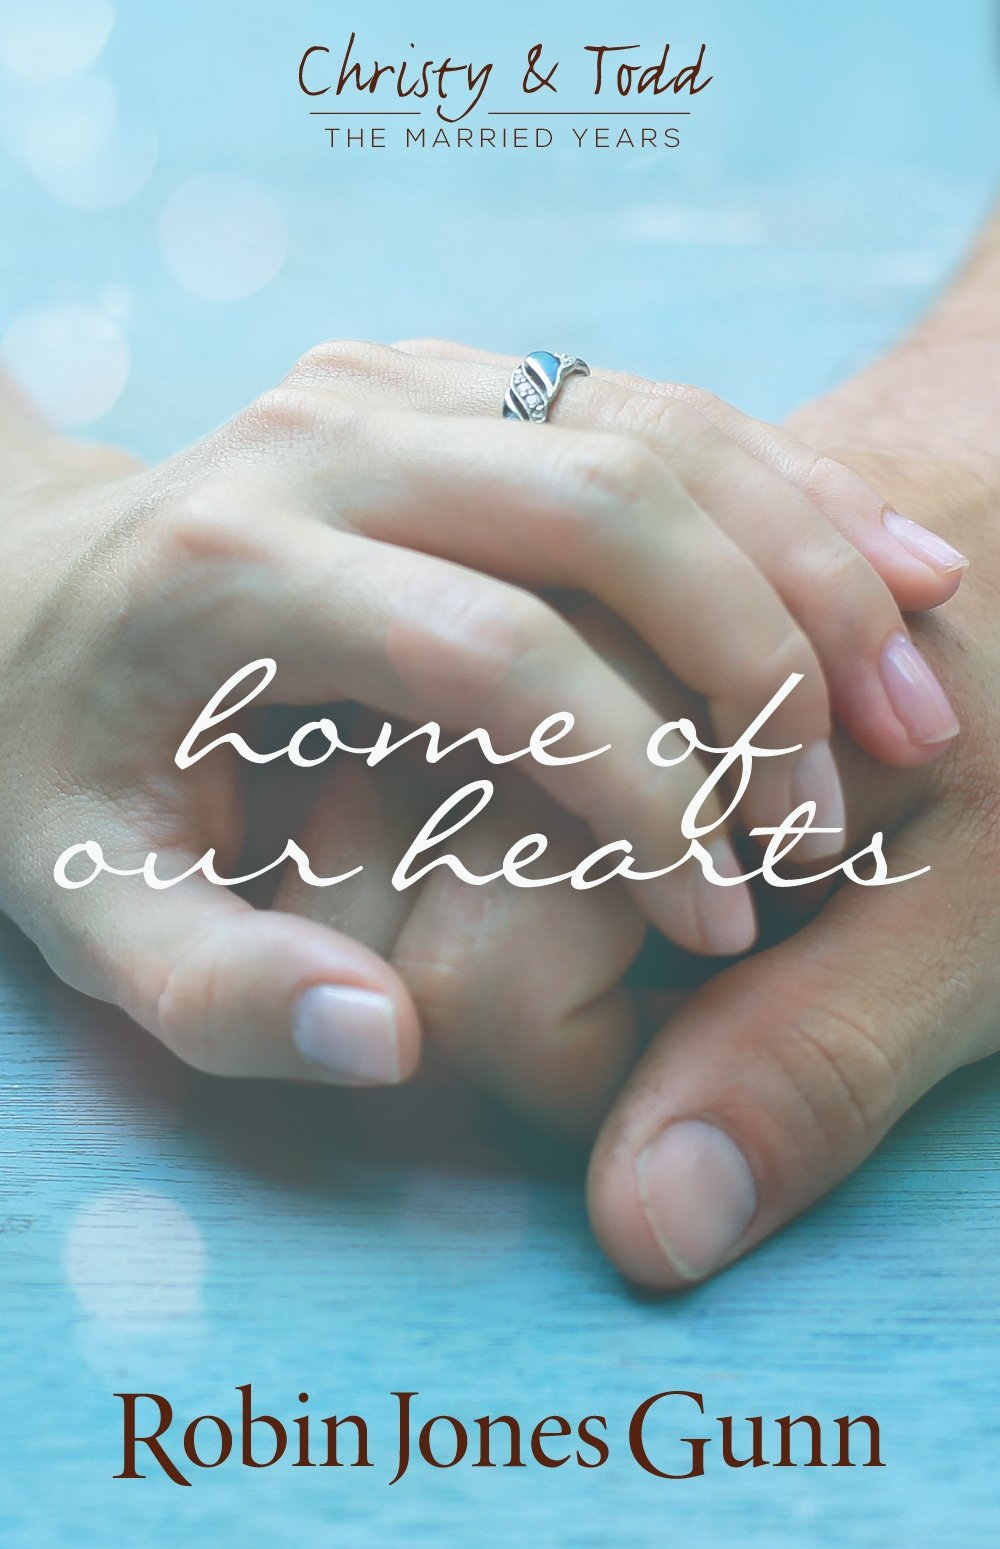 Home Of Our Hearts (christy & Todd, The Married Years): Robin Jones Gunn:  9780982877241: Amazon: Books